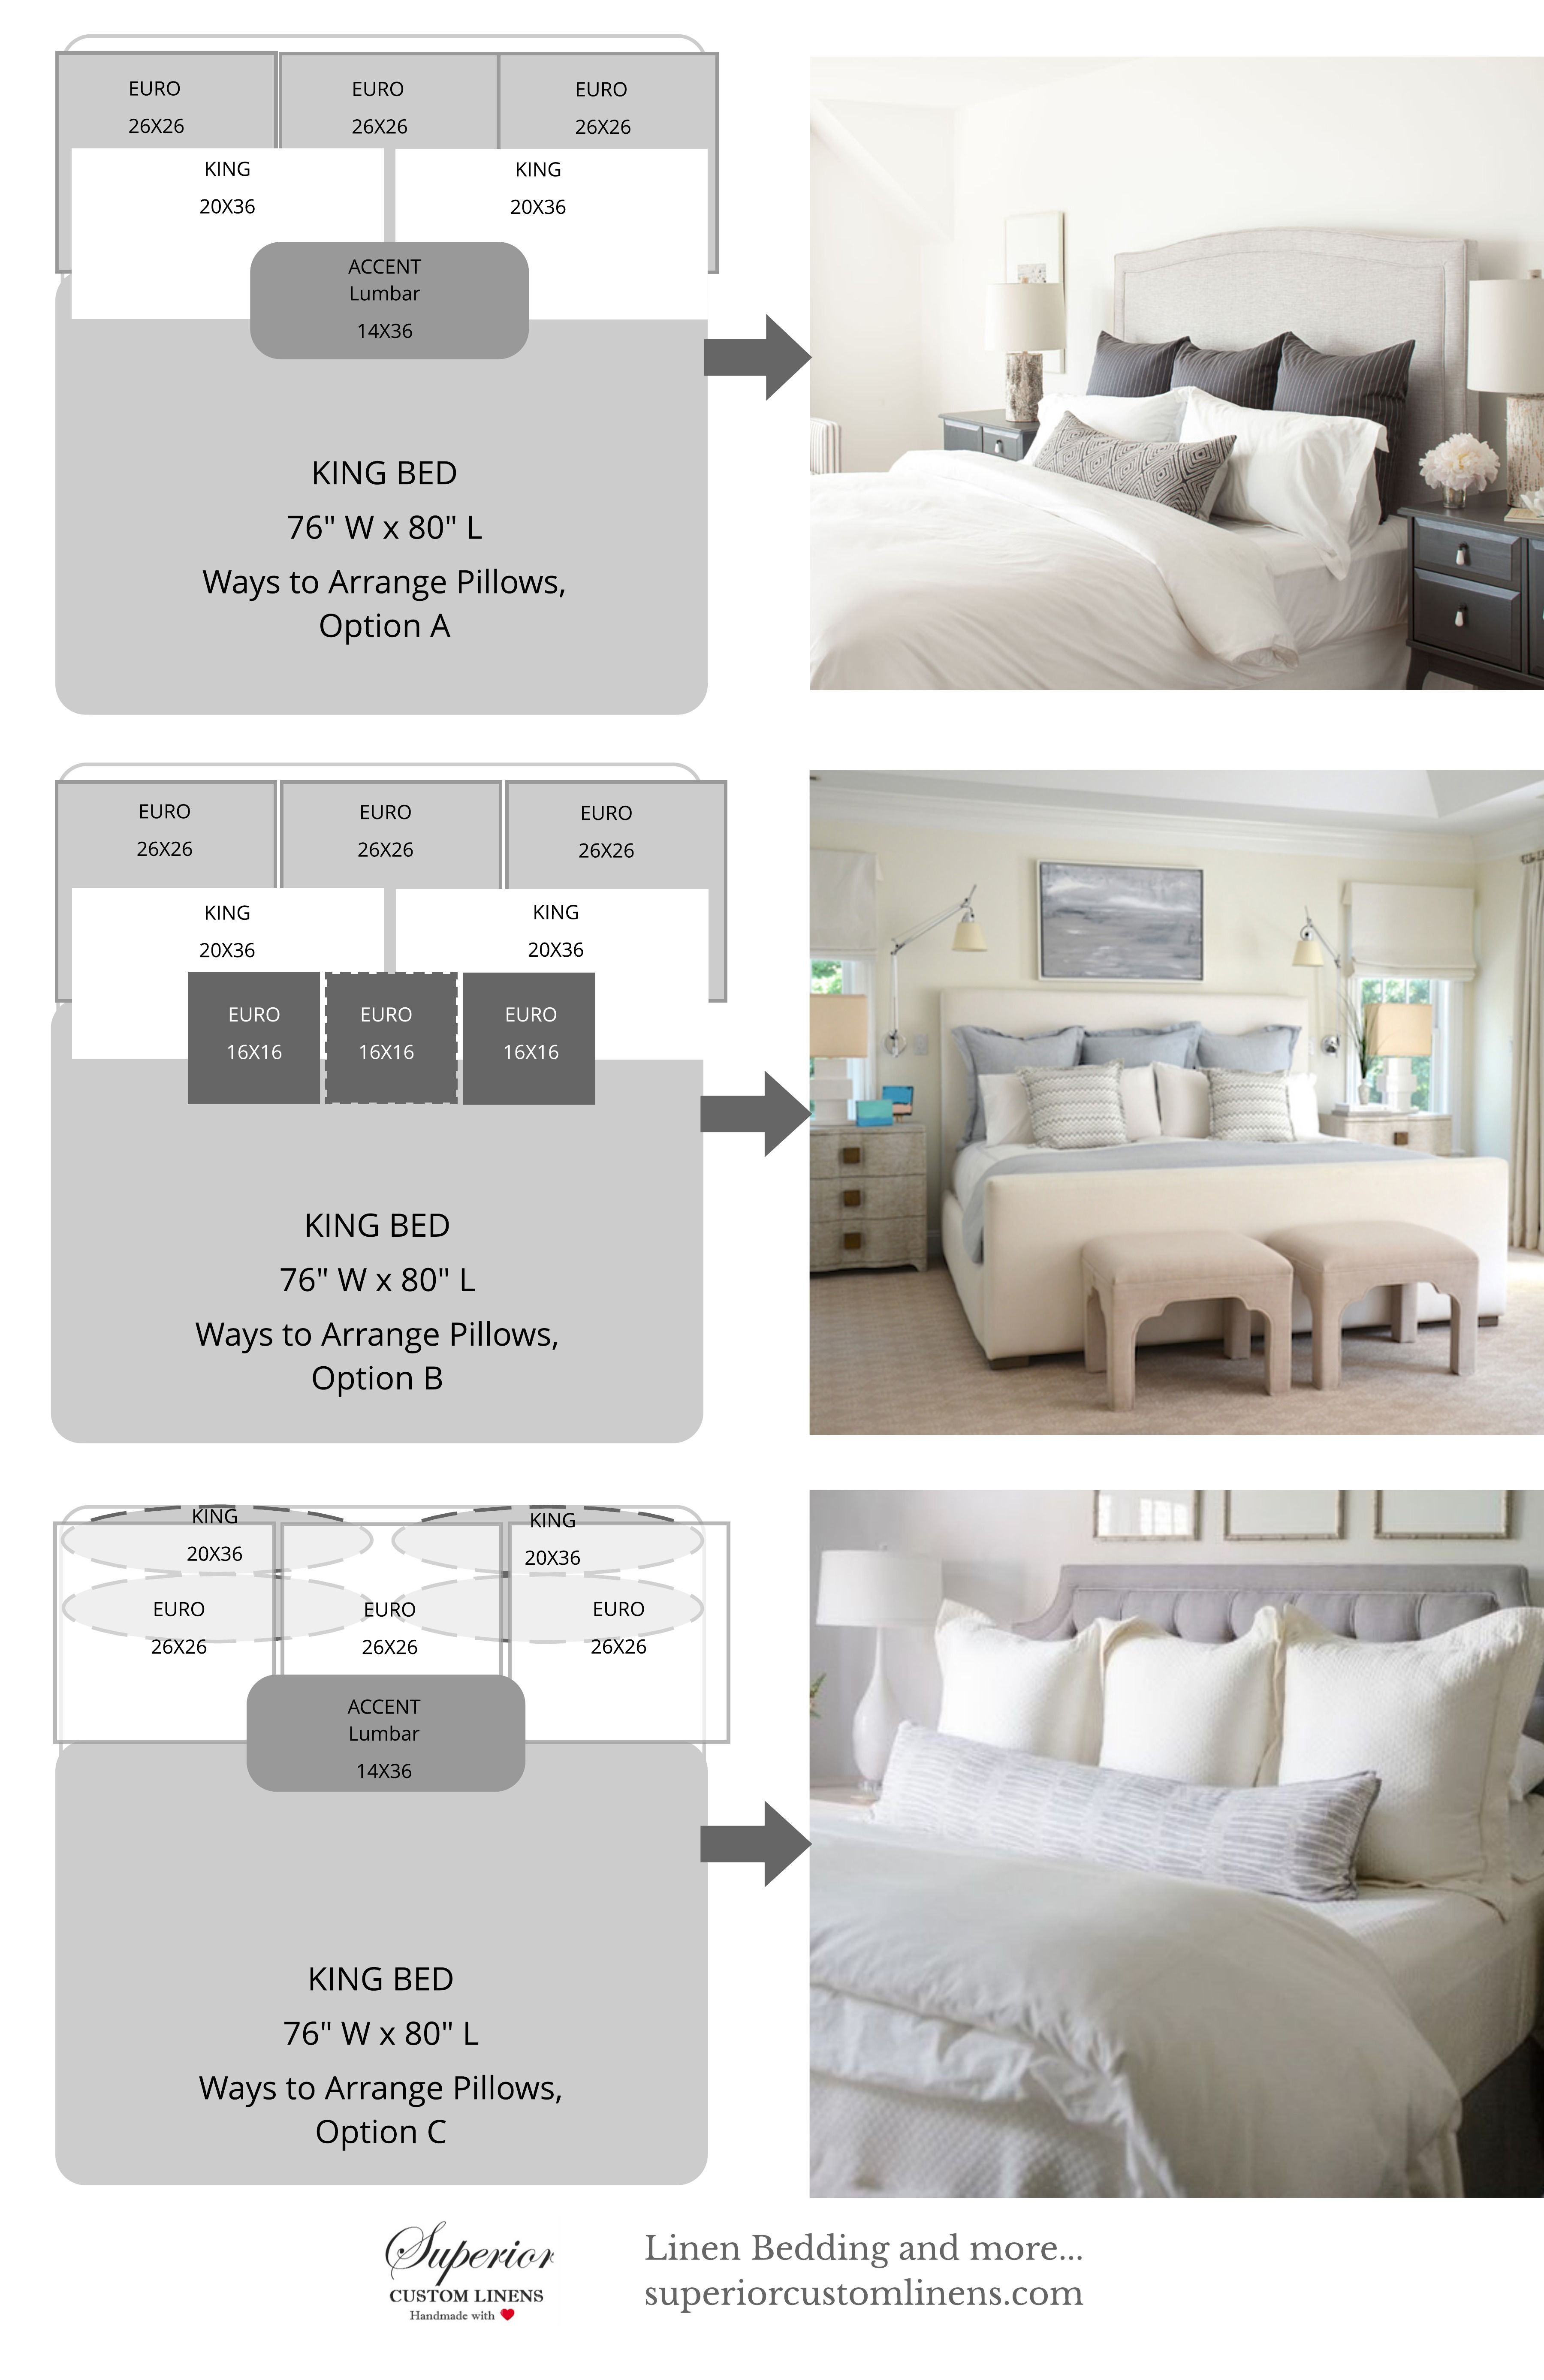 3 Ways To Arrange Pillows On King Size Bed